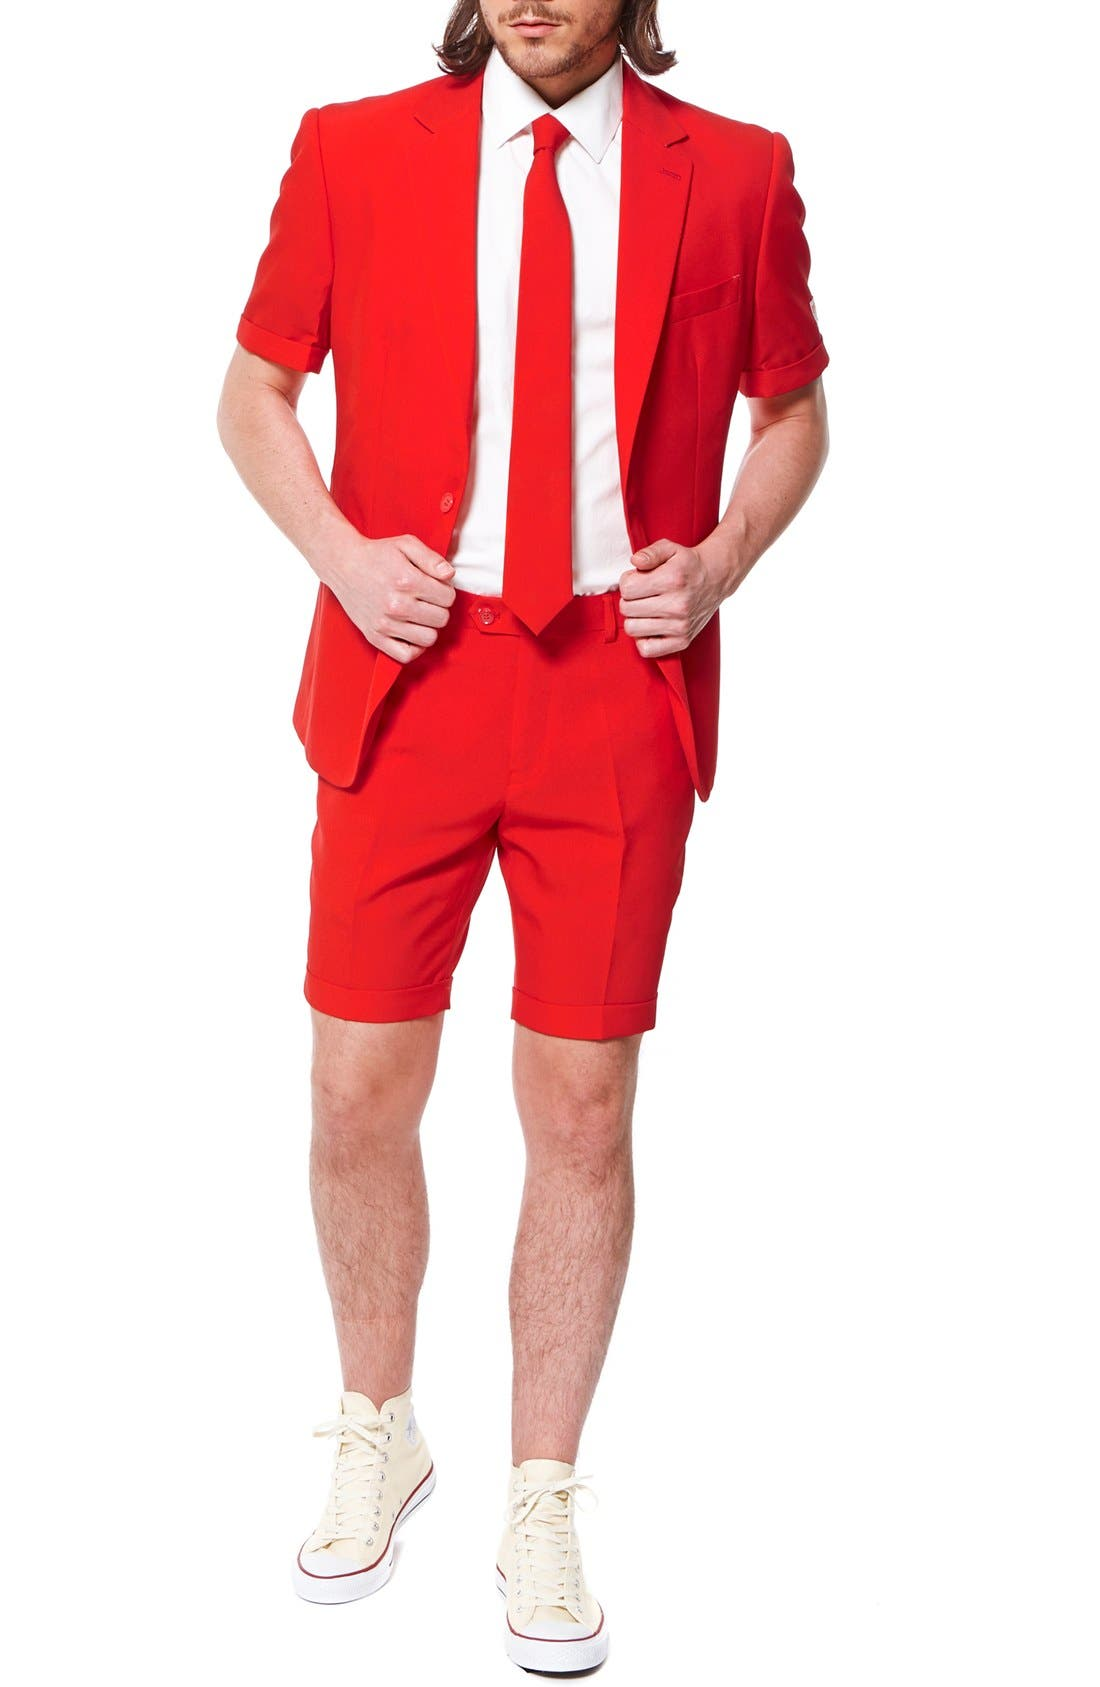 'Summer Red Devil' Trim Fit Short Suit with Tie,                             Main thumbnail 1, color,                             Medium Red